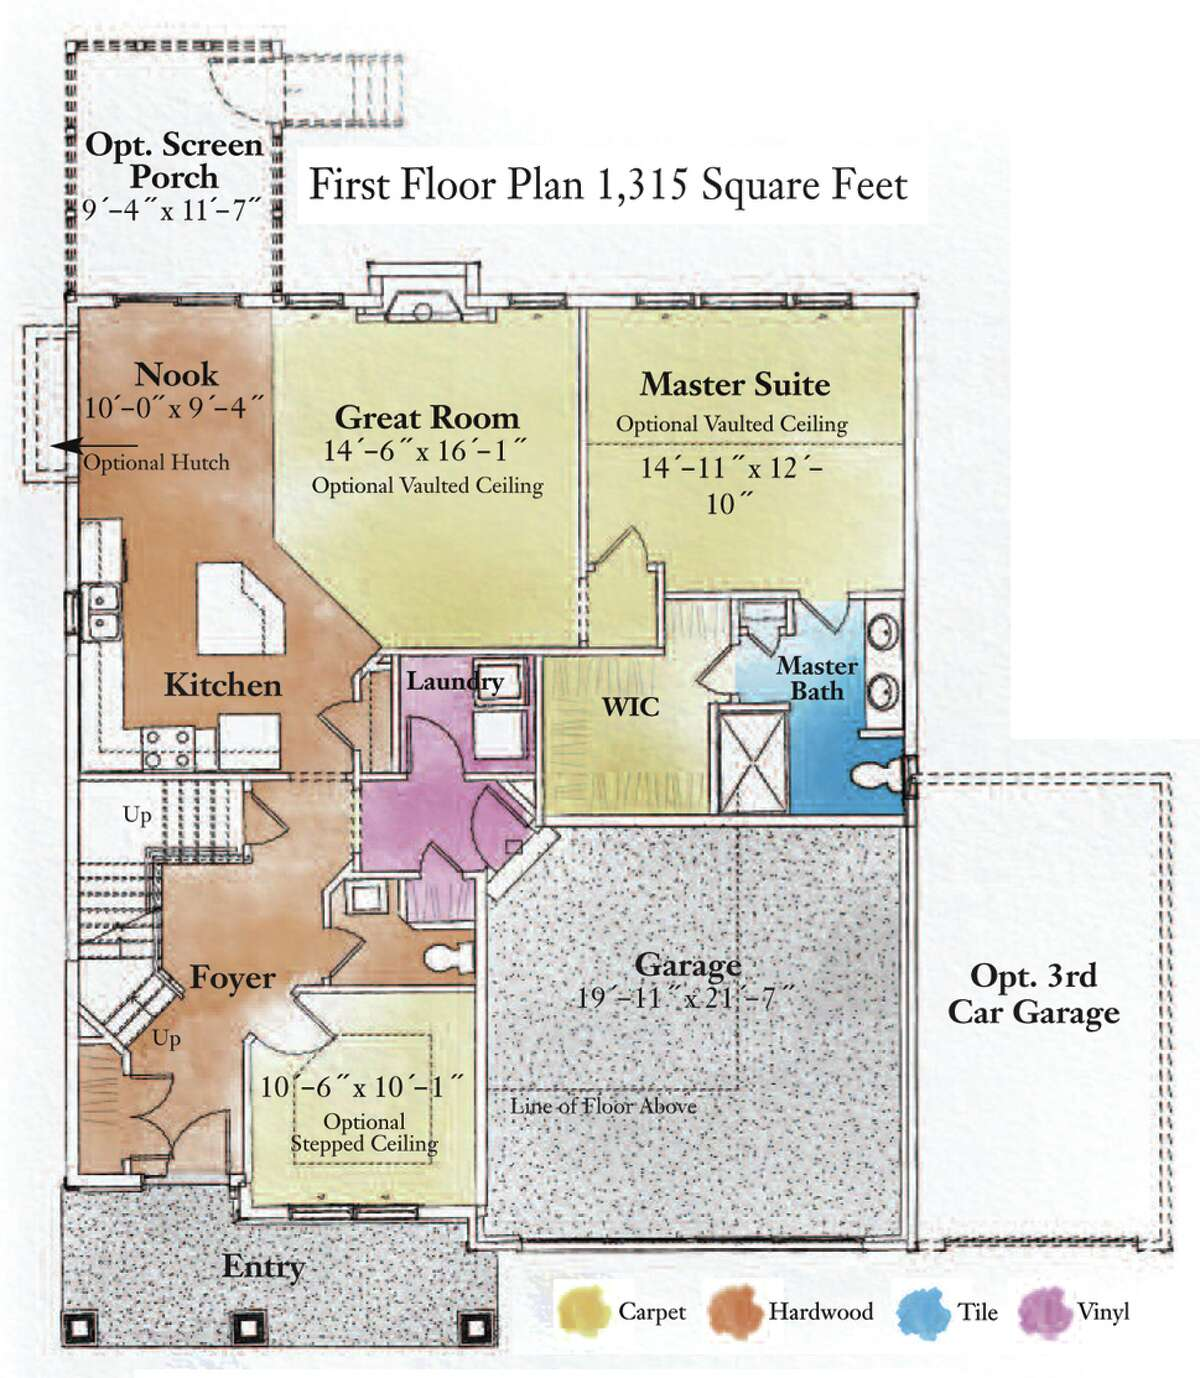 First floor plans for the The Mill at Smith Bridge in Wilton by Belmonte Builders. (Courtesy Belmonte Builders)